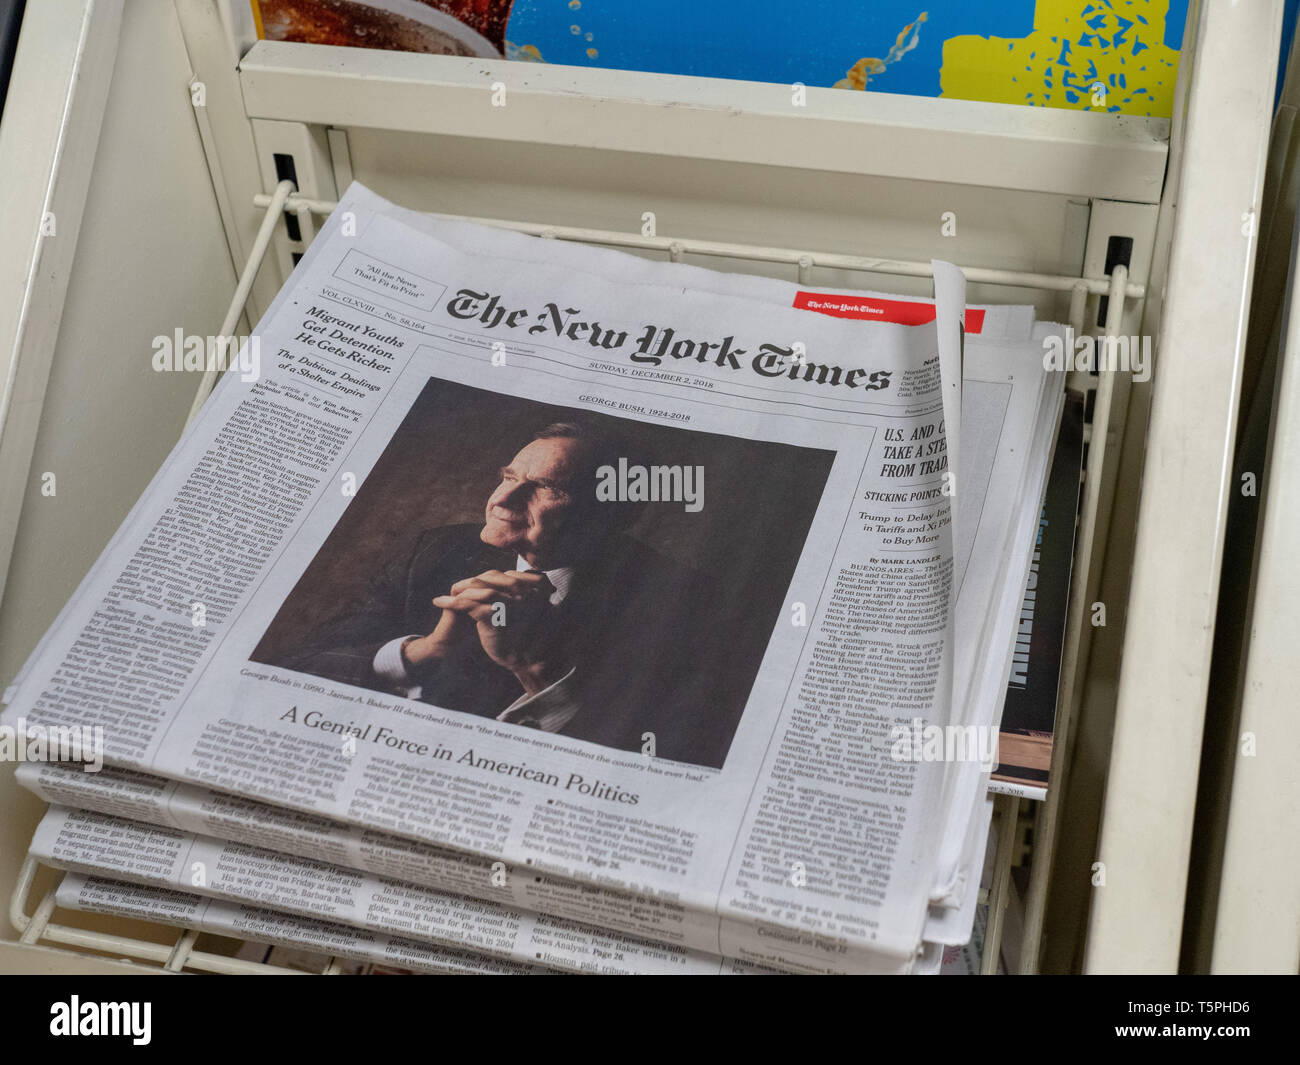 New York Times cover of death of George H.W. Bush - Stock Image